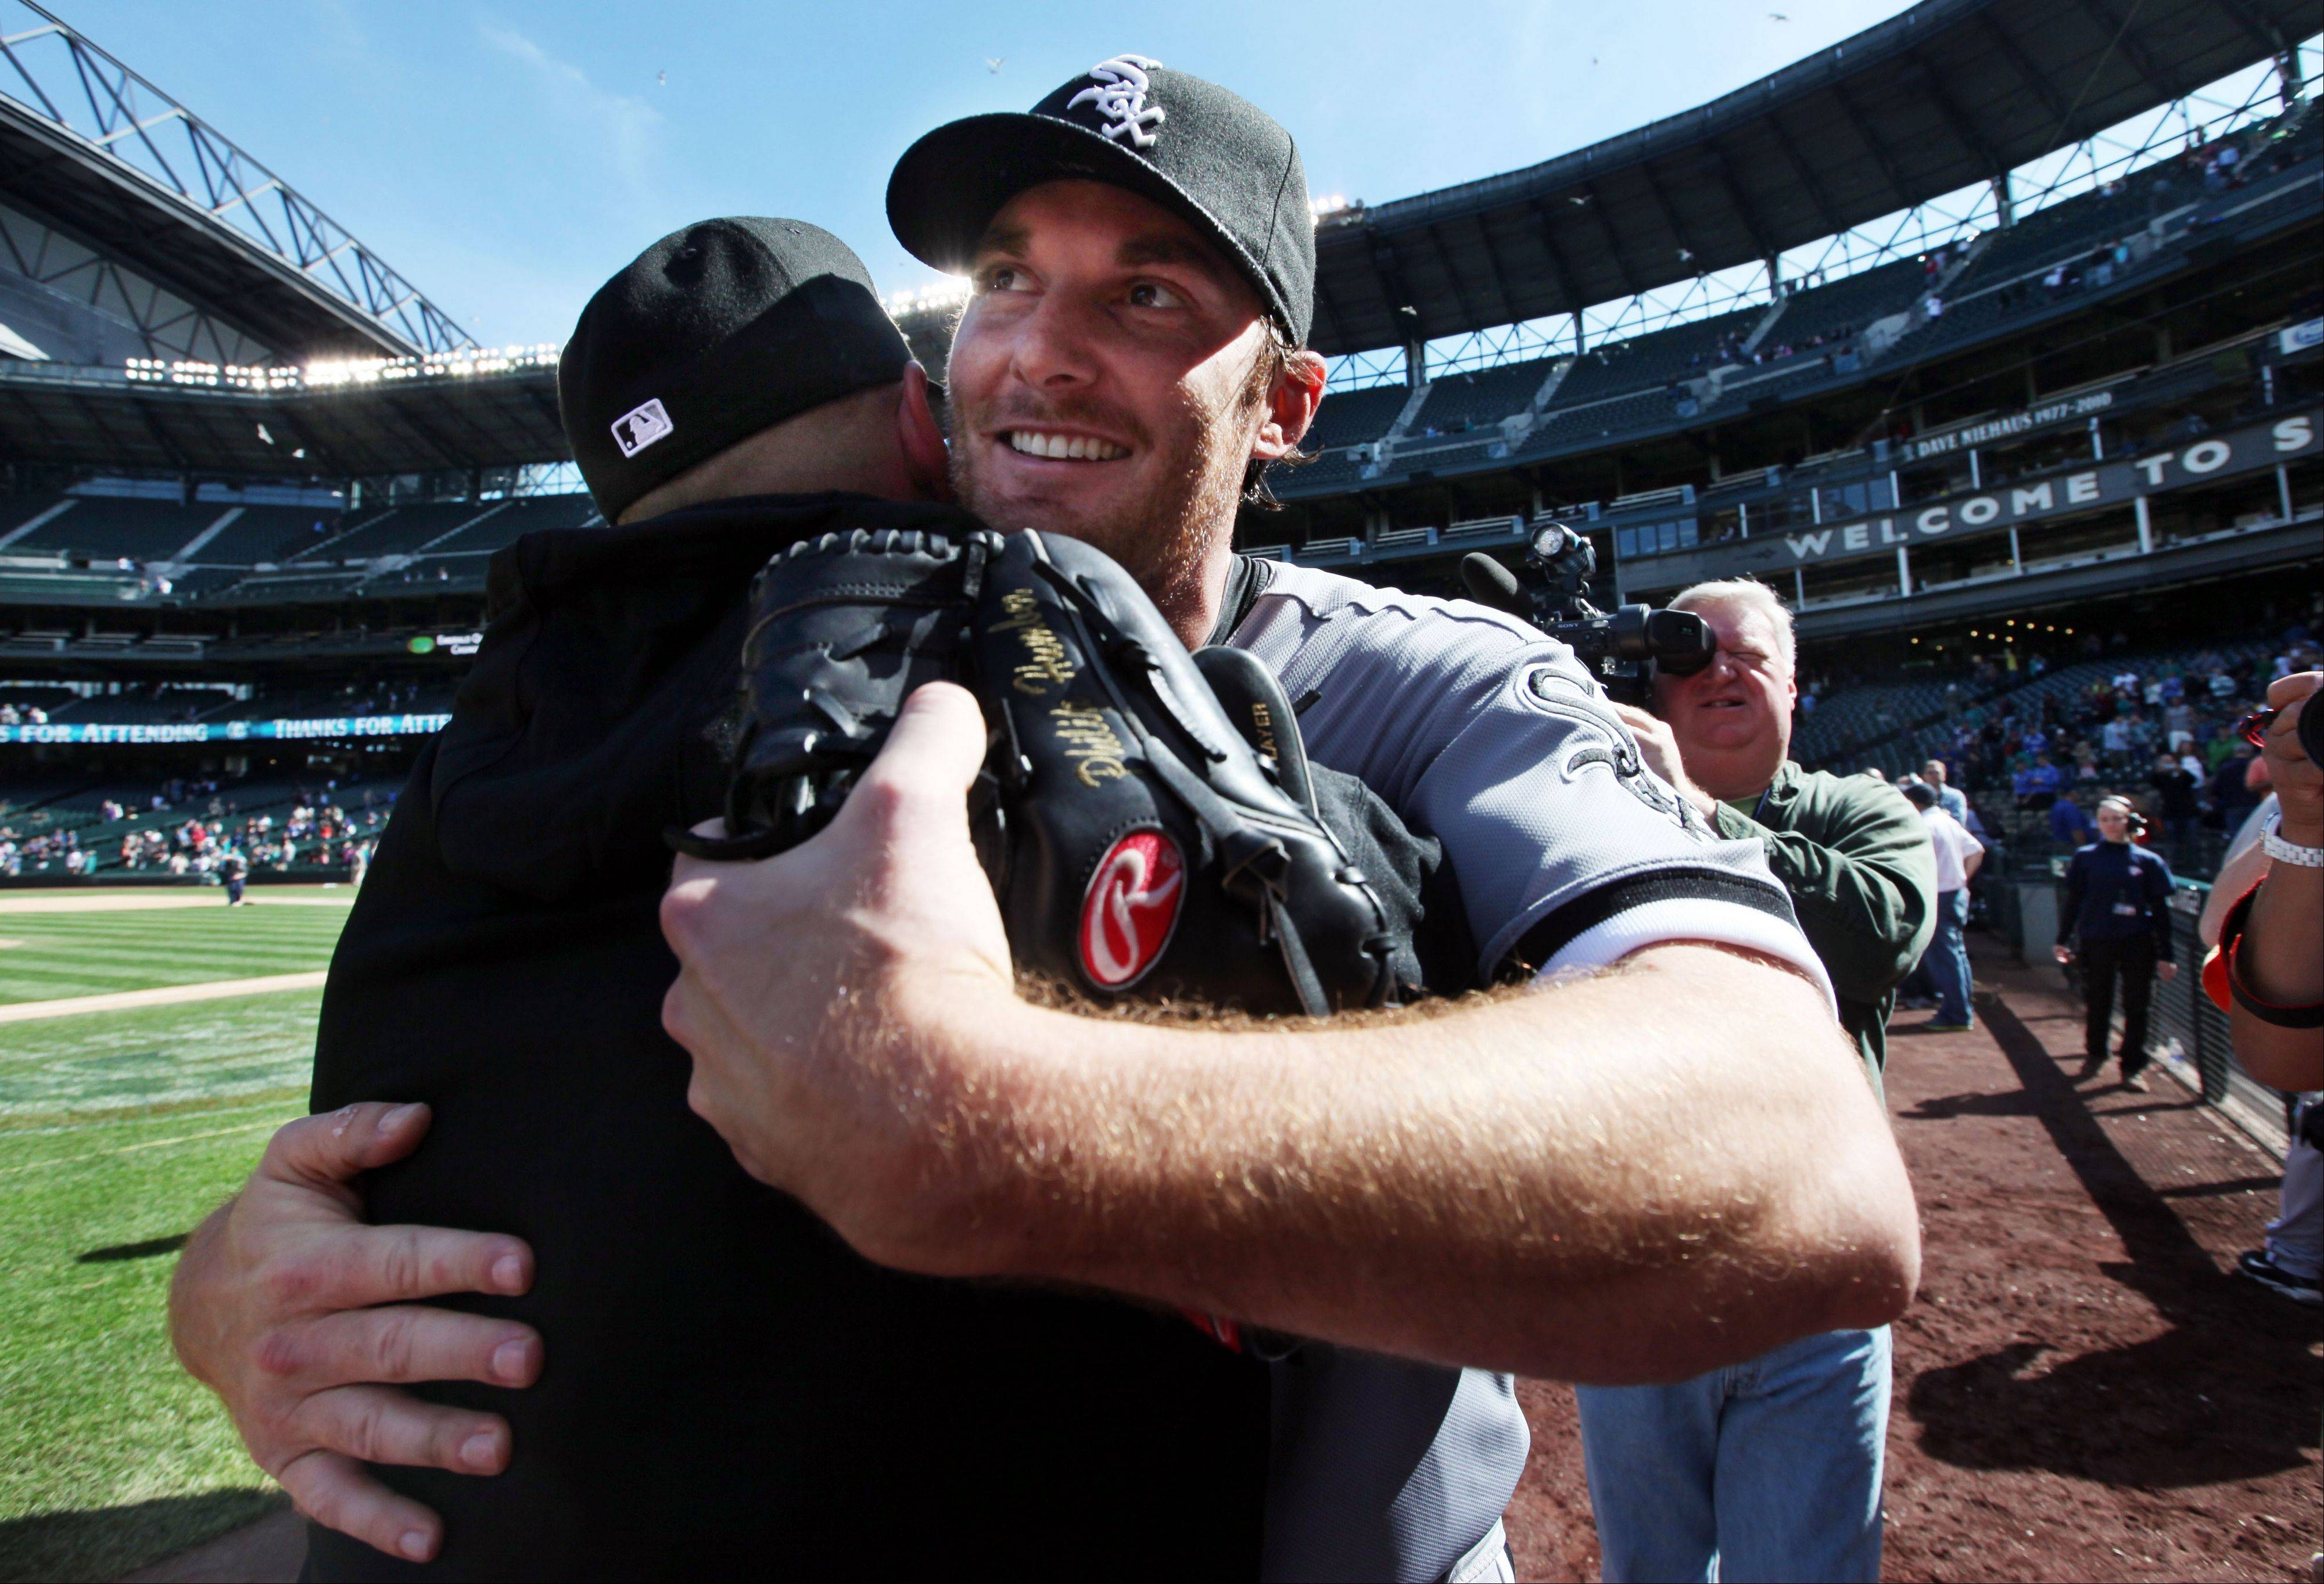 White Sox starting pitcher Phil Humber is embraced after pitching a perfect baseball game Saturday in Seattle against the Mariners. Humber is scheduled to pitch Thursday against the Boston Red Sox at U.S. Cellular Field.